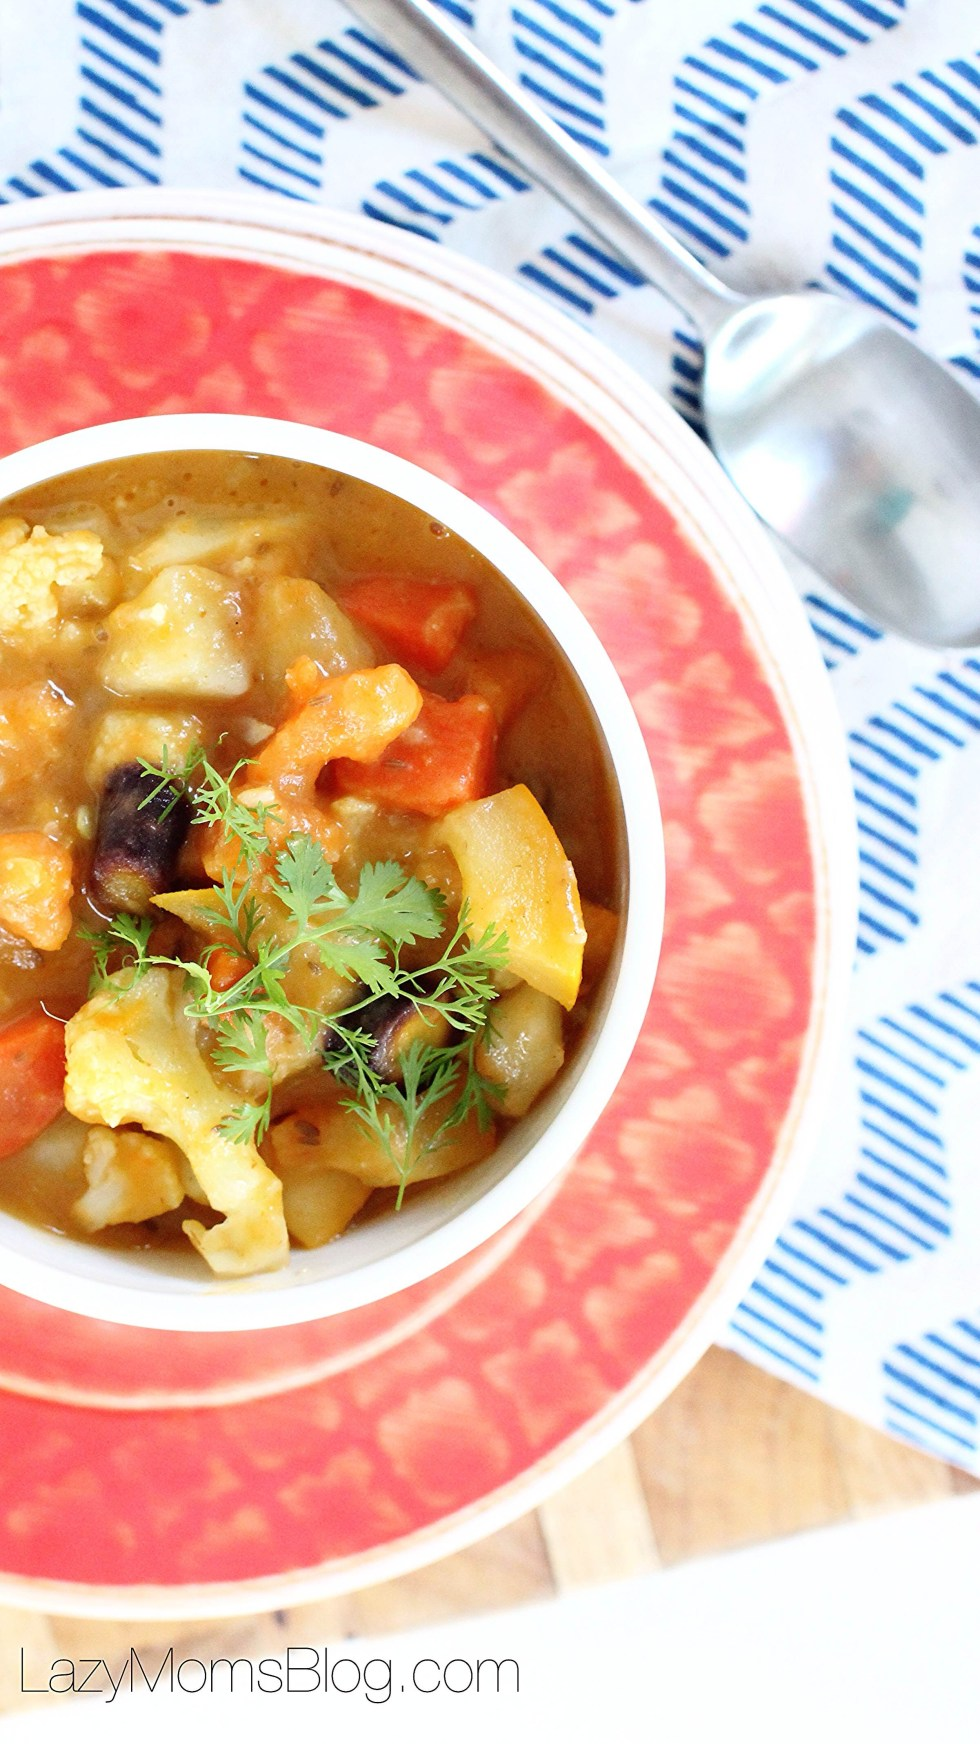 This vegetarian curry is so full of flavor and texture, while being healthy, comforting and so easy to make! Definitely a family favorite!